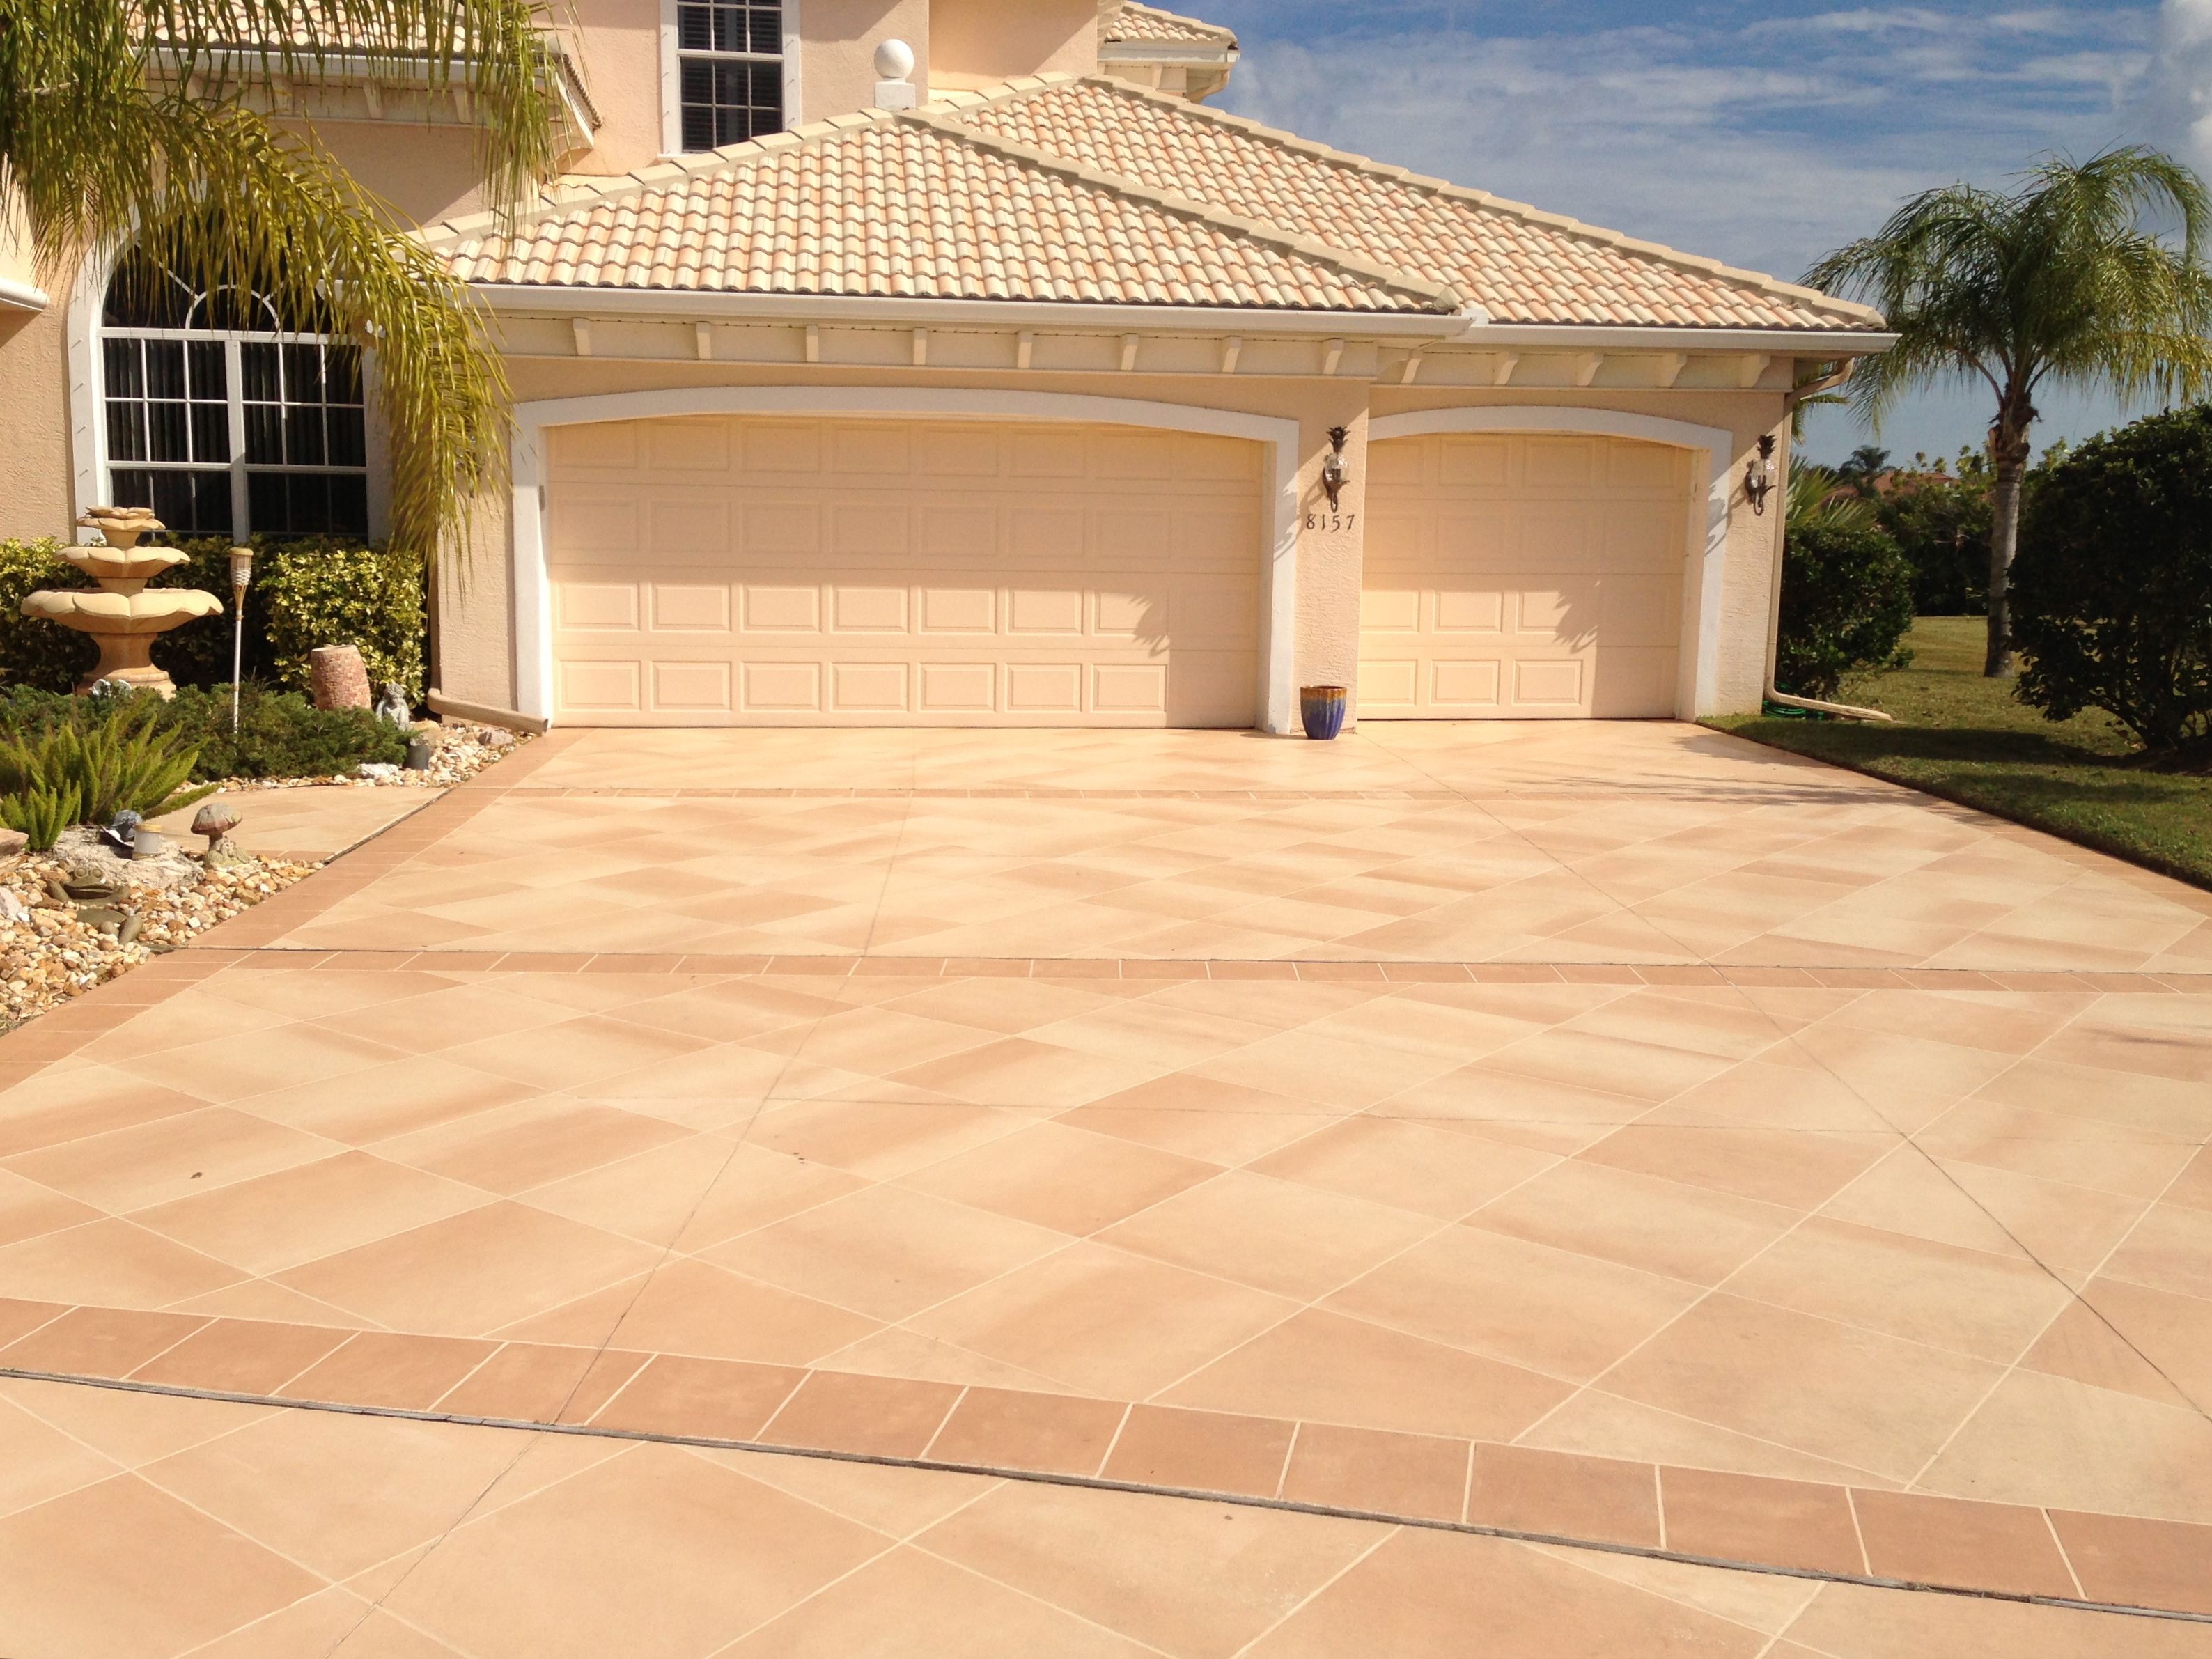 Concrete Driveway Design Ideas concrete driveway stenciled brick bands site custom ram design ocala fl Tagged Concrete Decorating Concrete Design